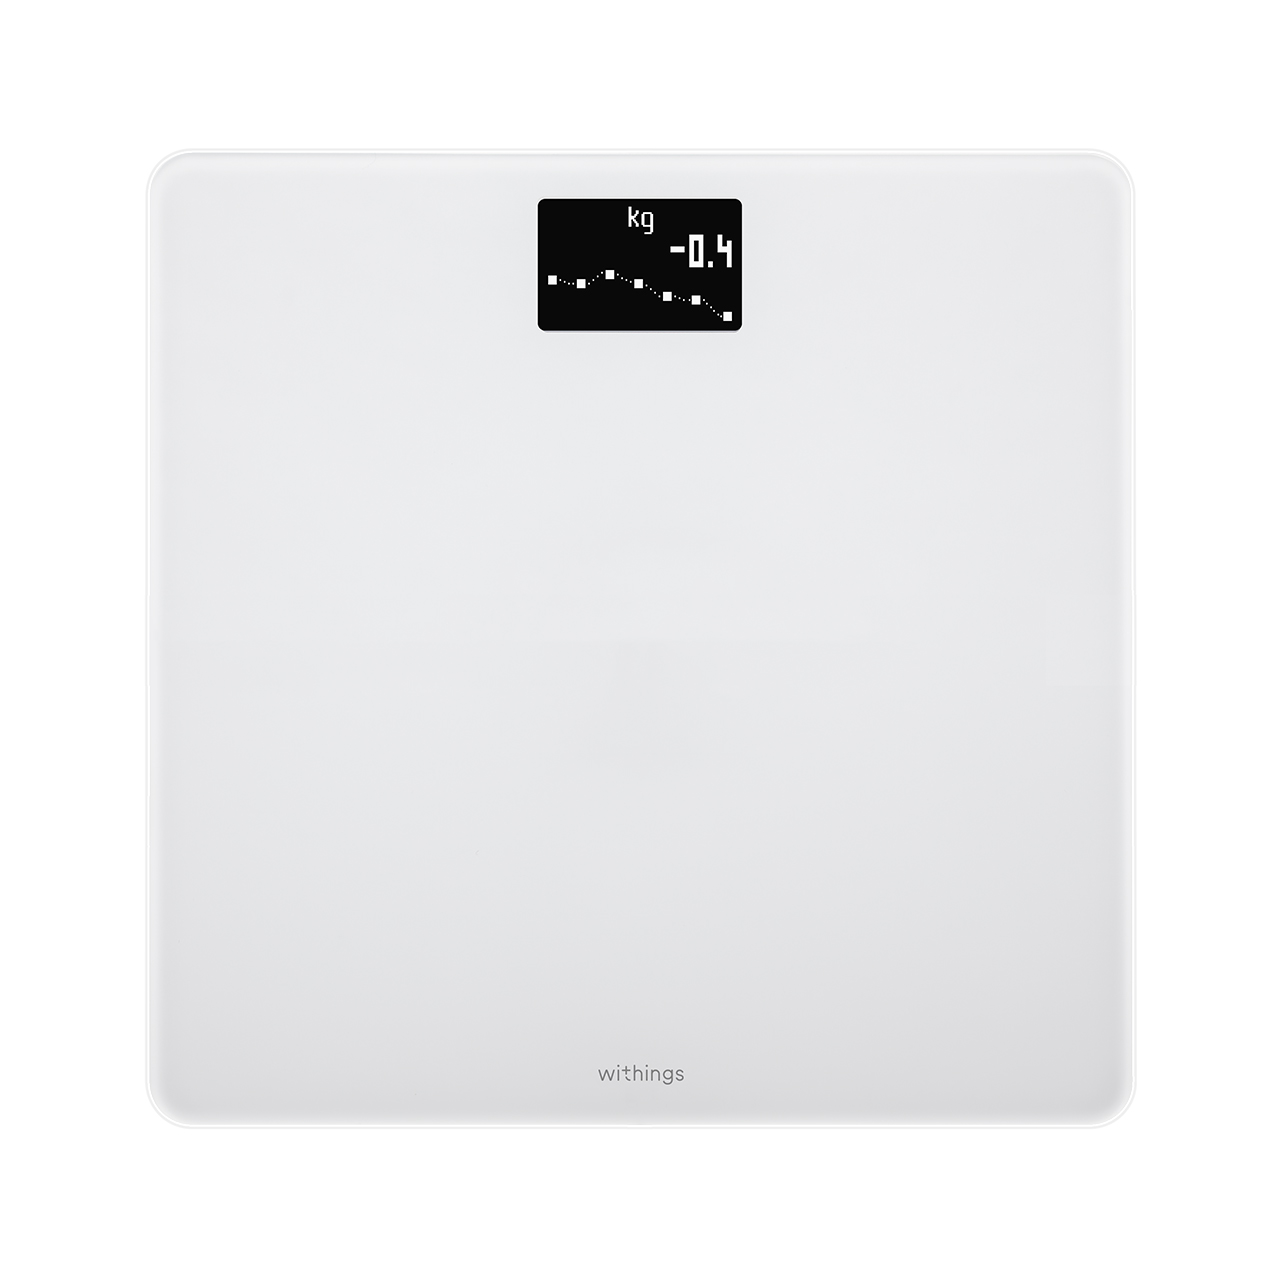 Withings Body (Nokia), Blanc - Balance Wi-Fi avec mesure dIMC - Synchronisation Wi-Fi, Jusqua 8 utilisateurs - Boutique Officielle Withings